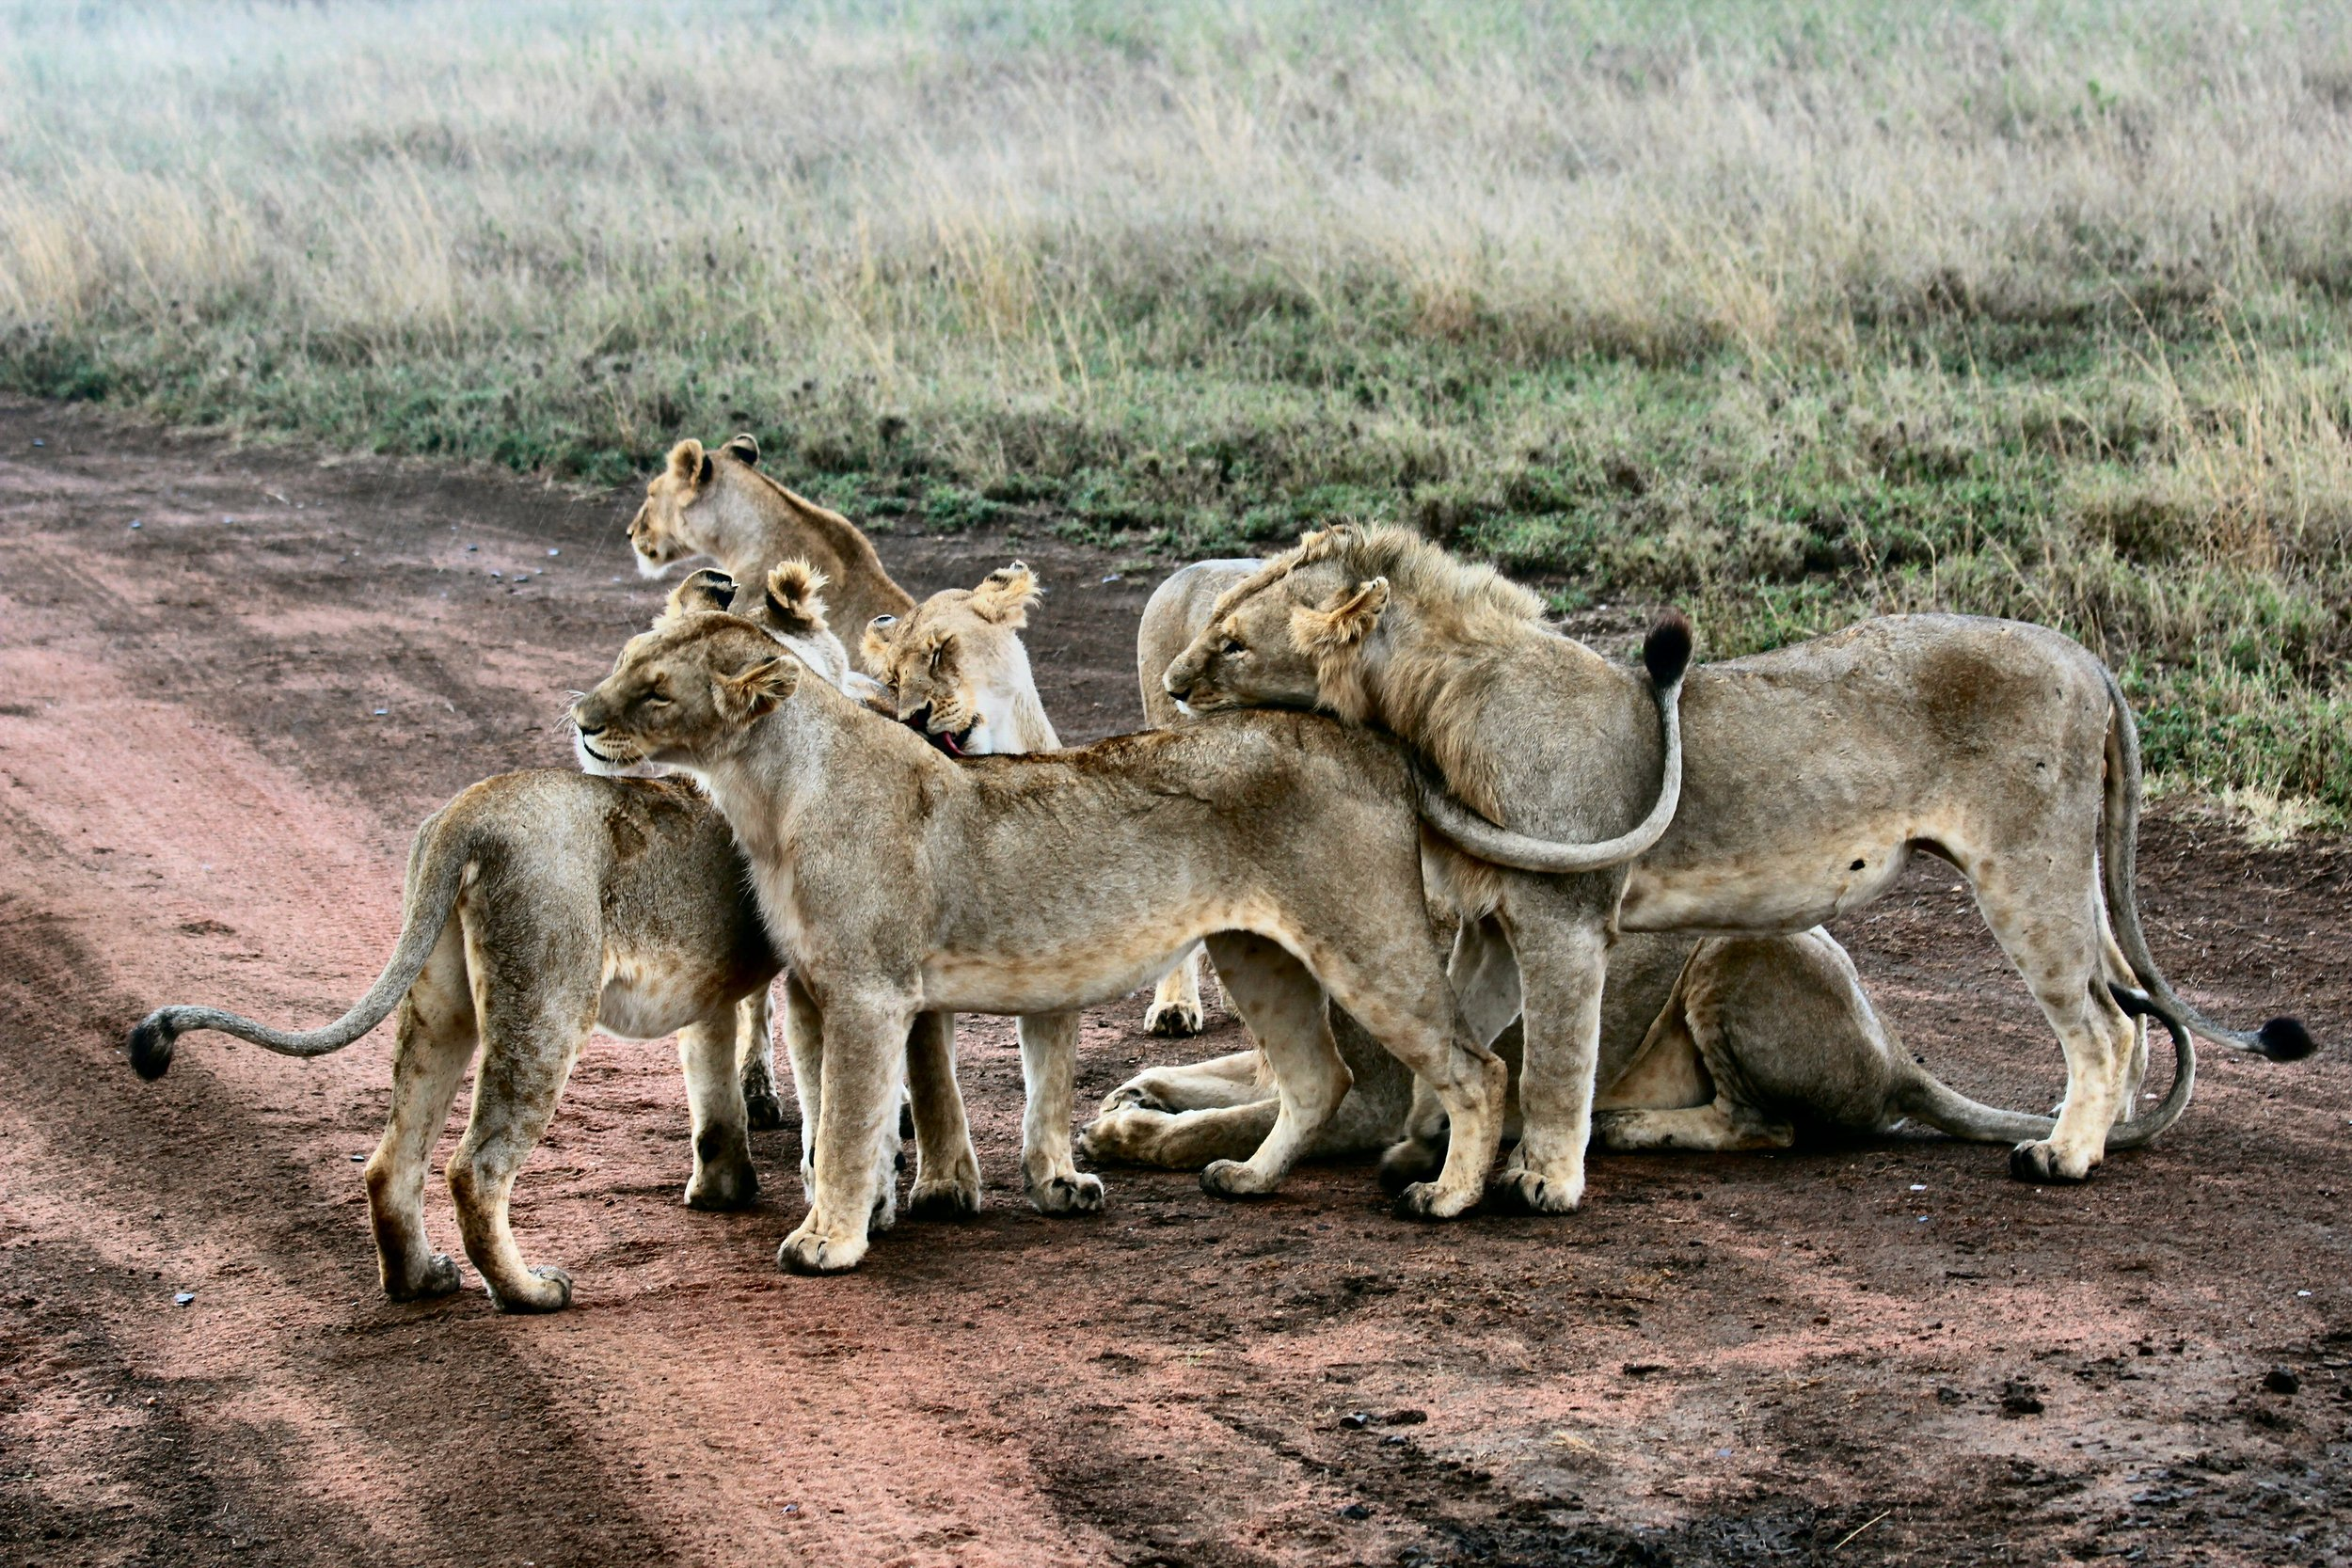 When you study animal packs, there is rarely a conflict, as the members of the pack solve their problems and move on.